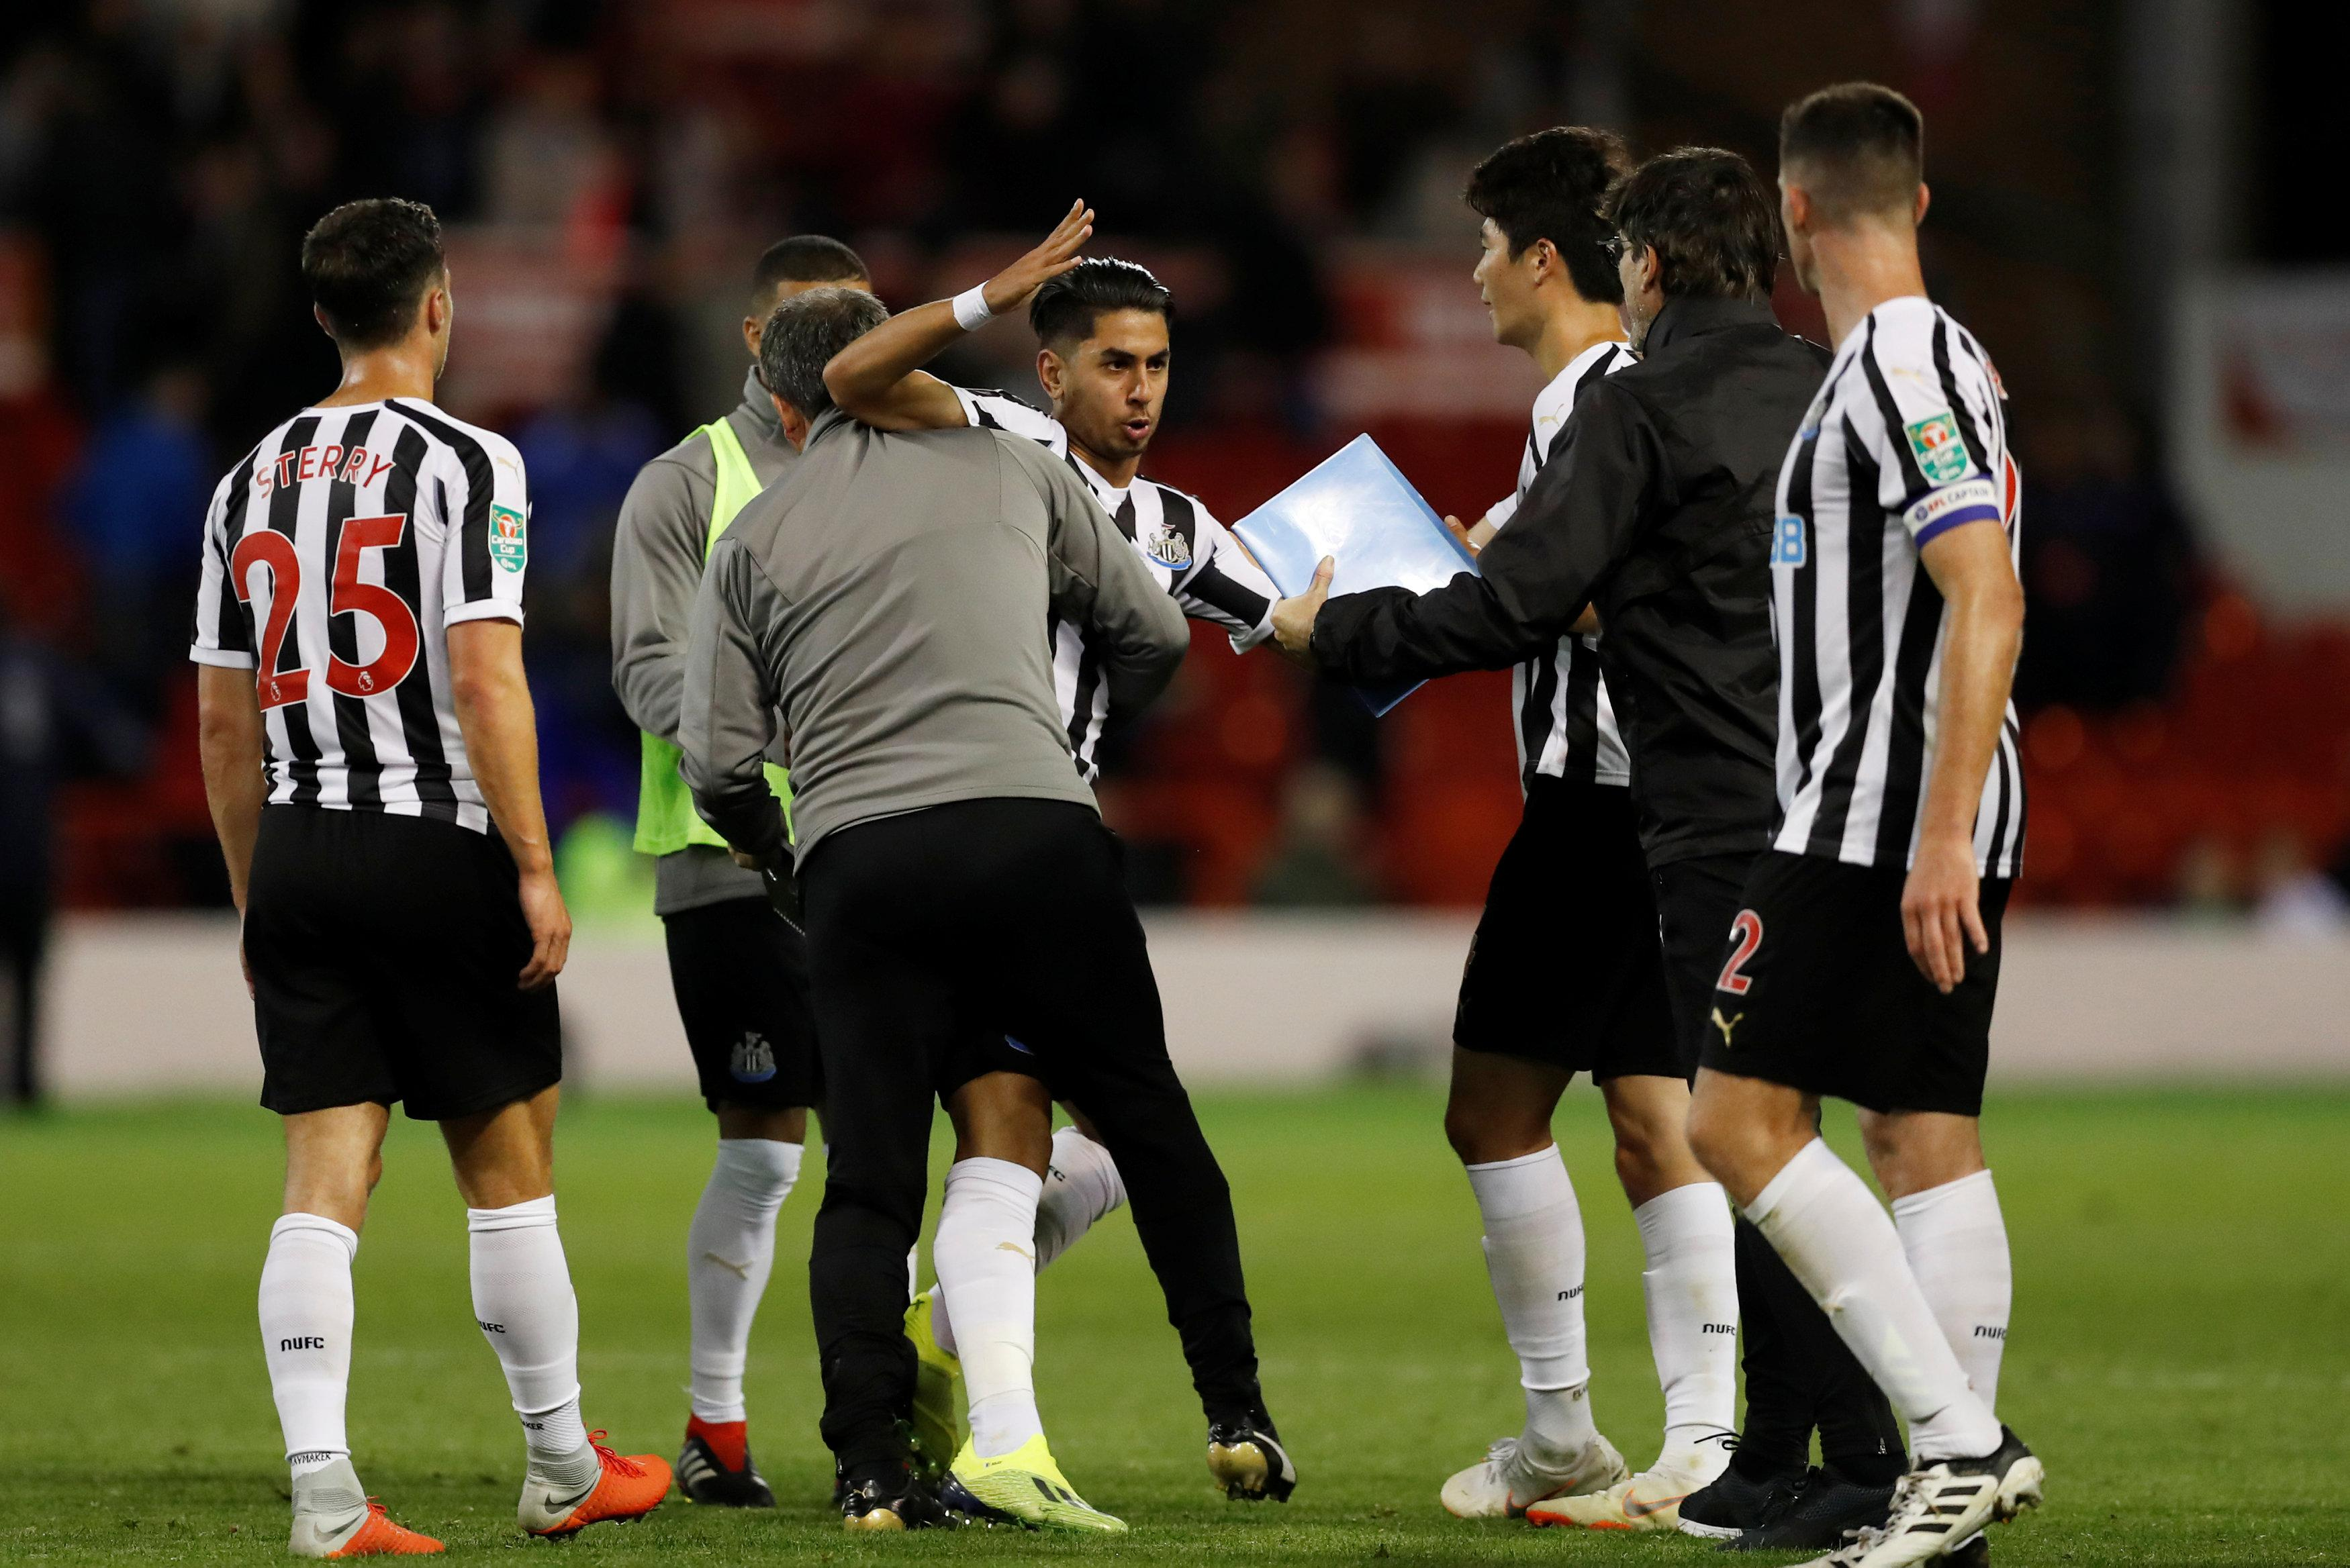 Ayoze Perez was raging at full-time after he was denied a penalty minutes earlier